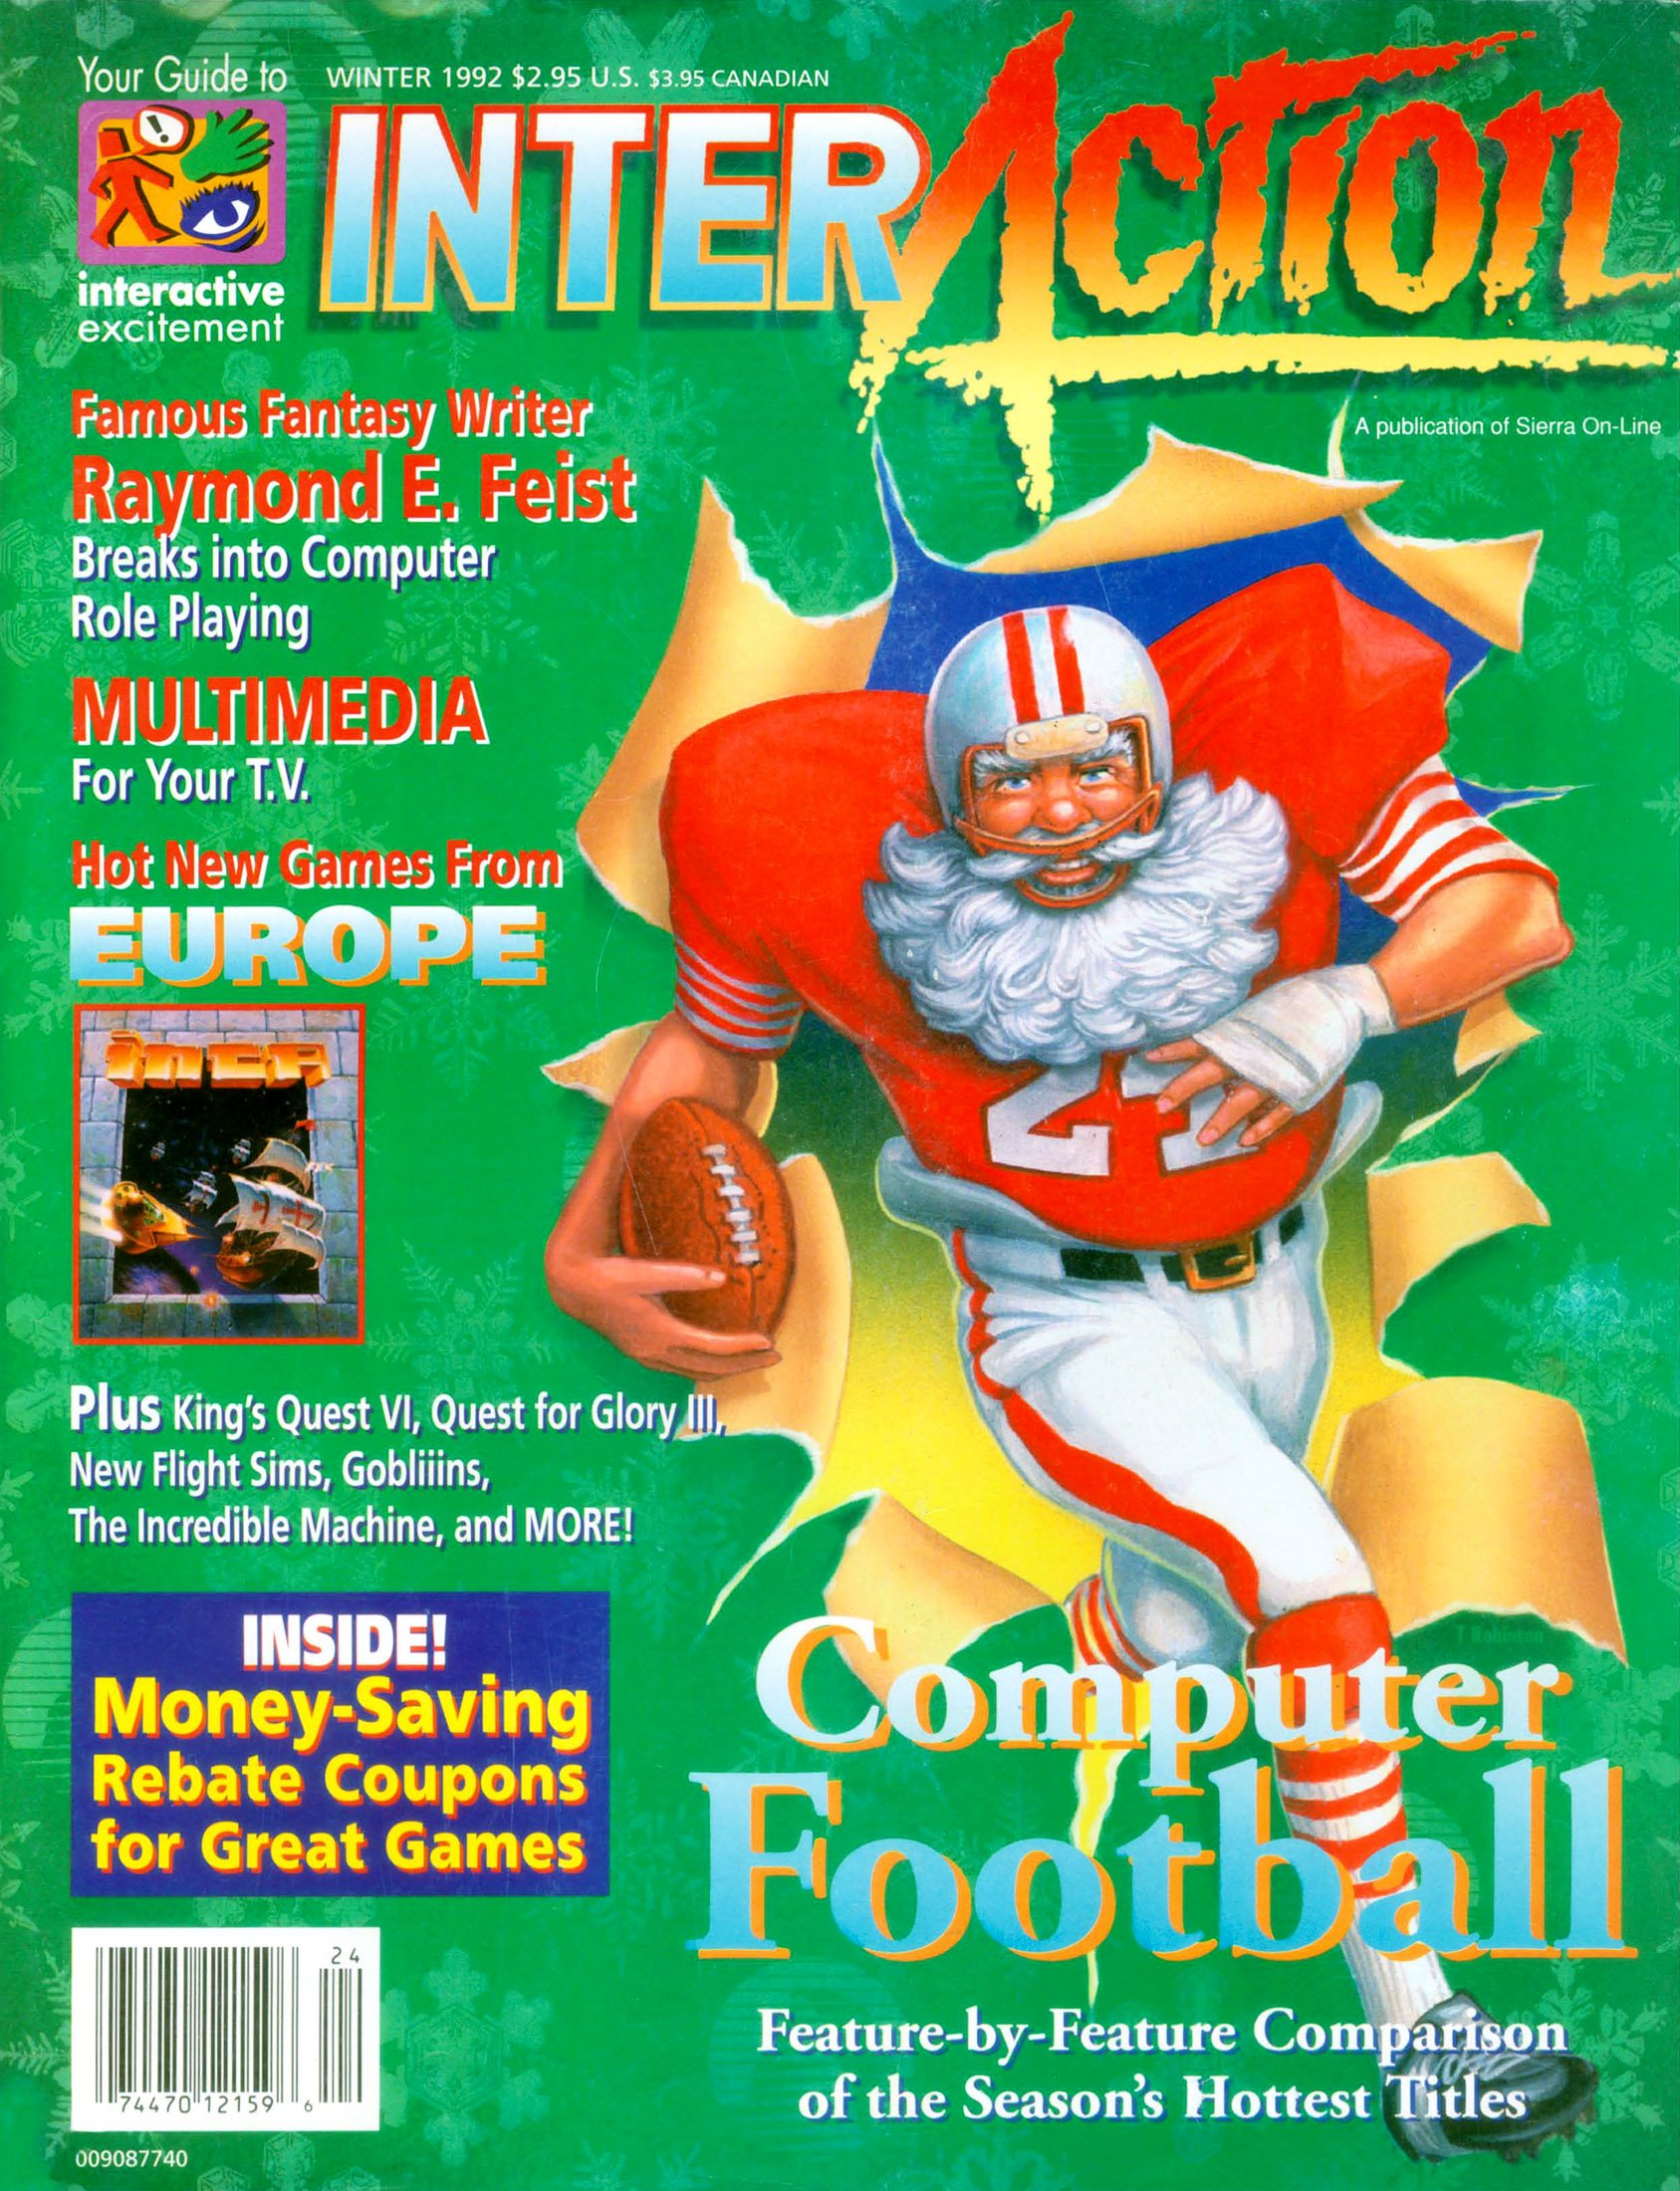 InterAction Issue 16 (Volume 5 Number 4) Winter 1992